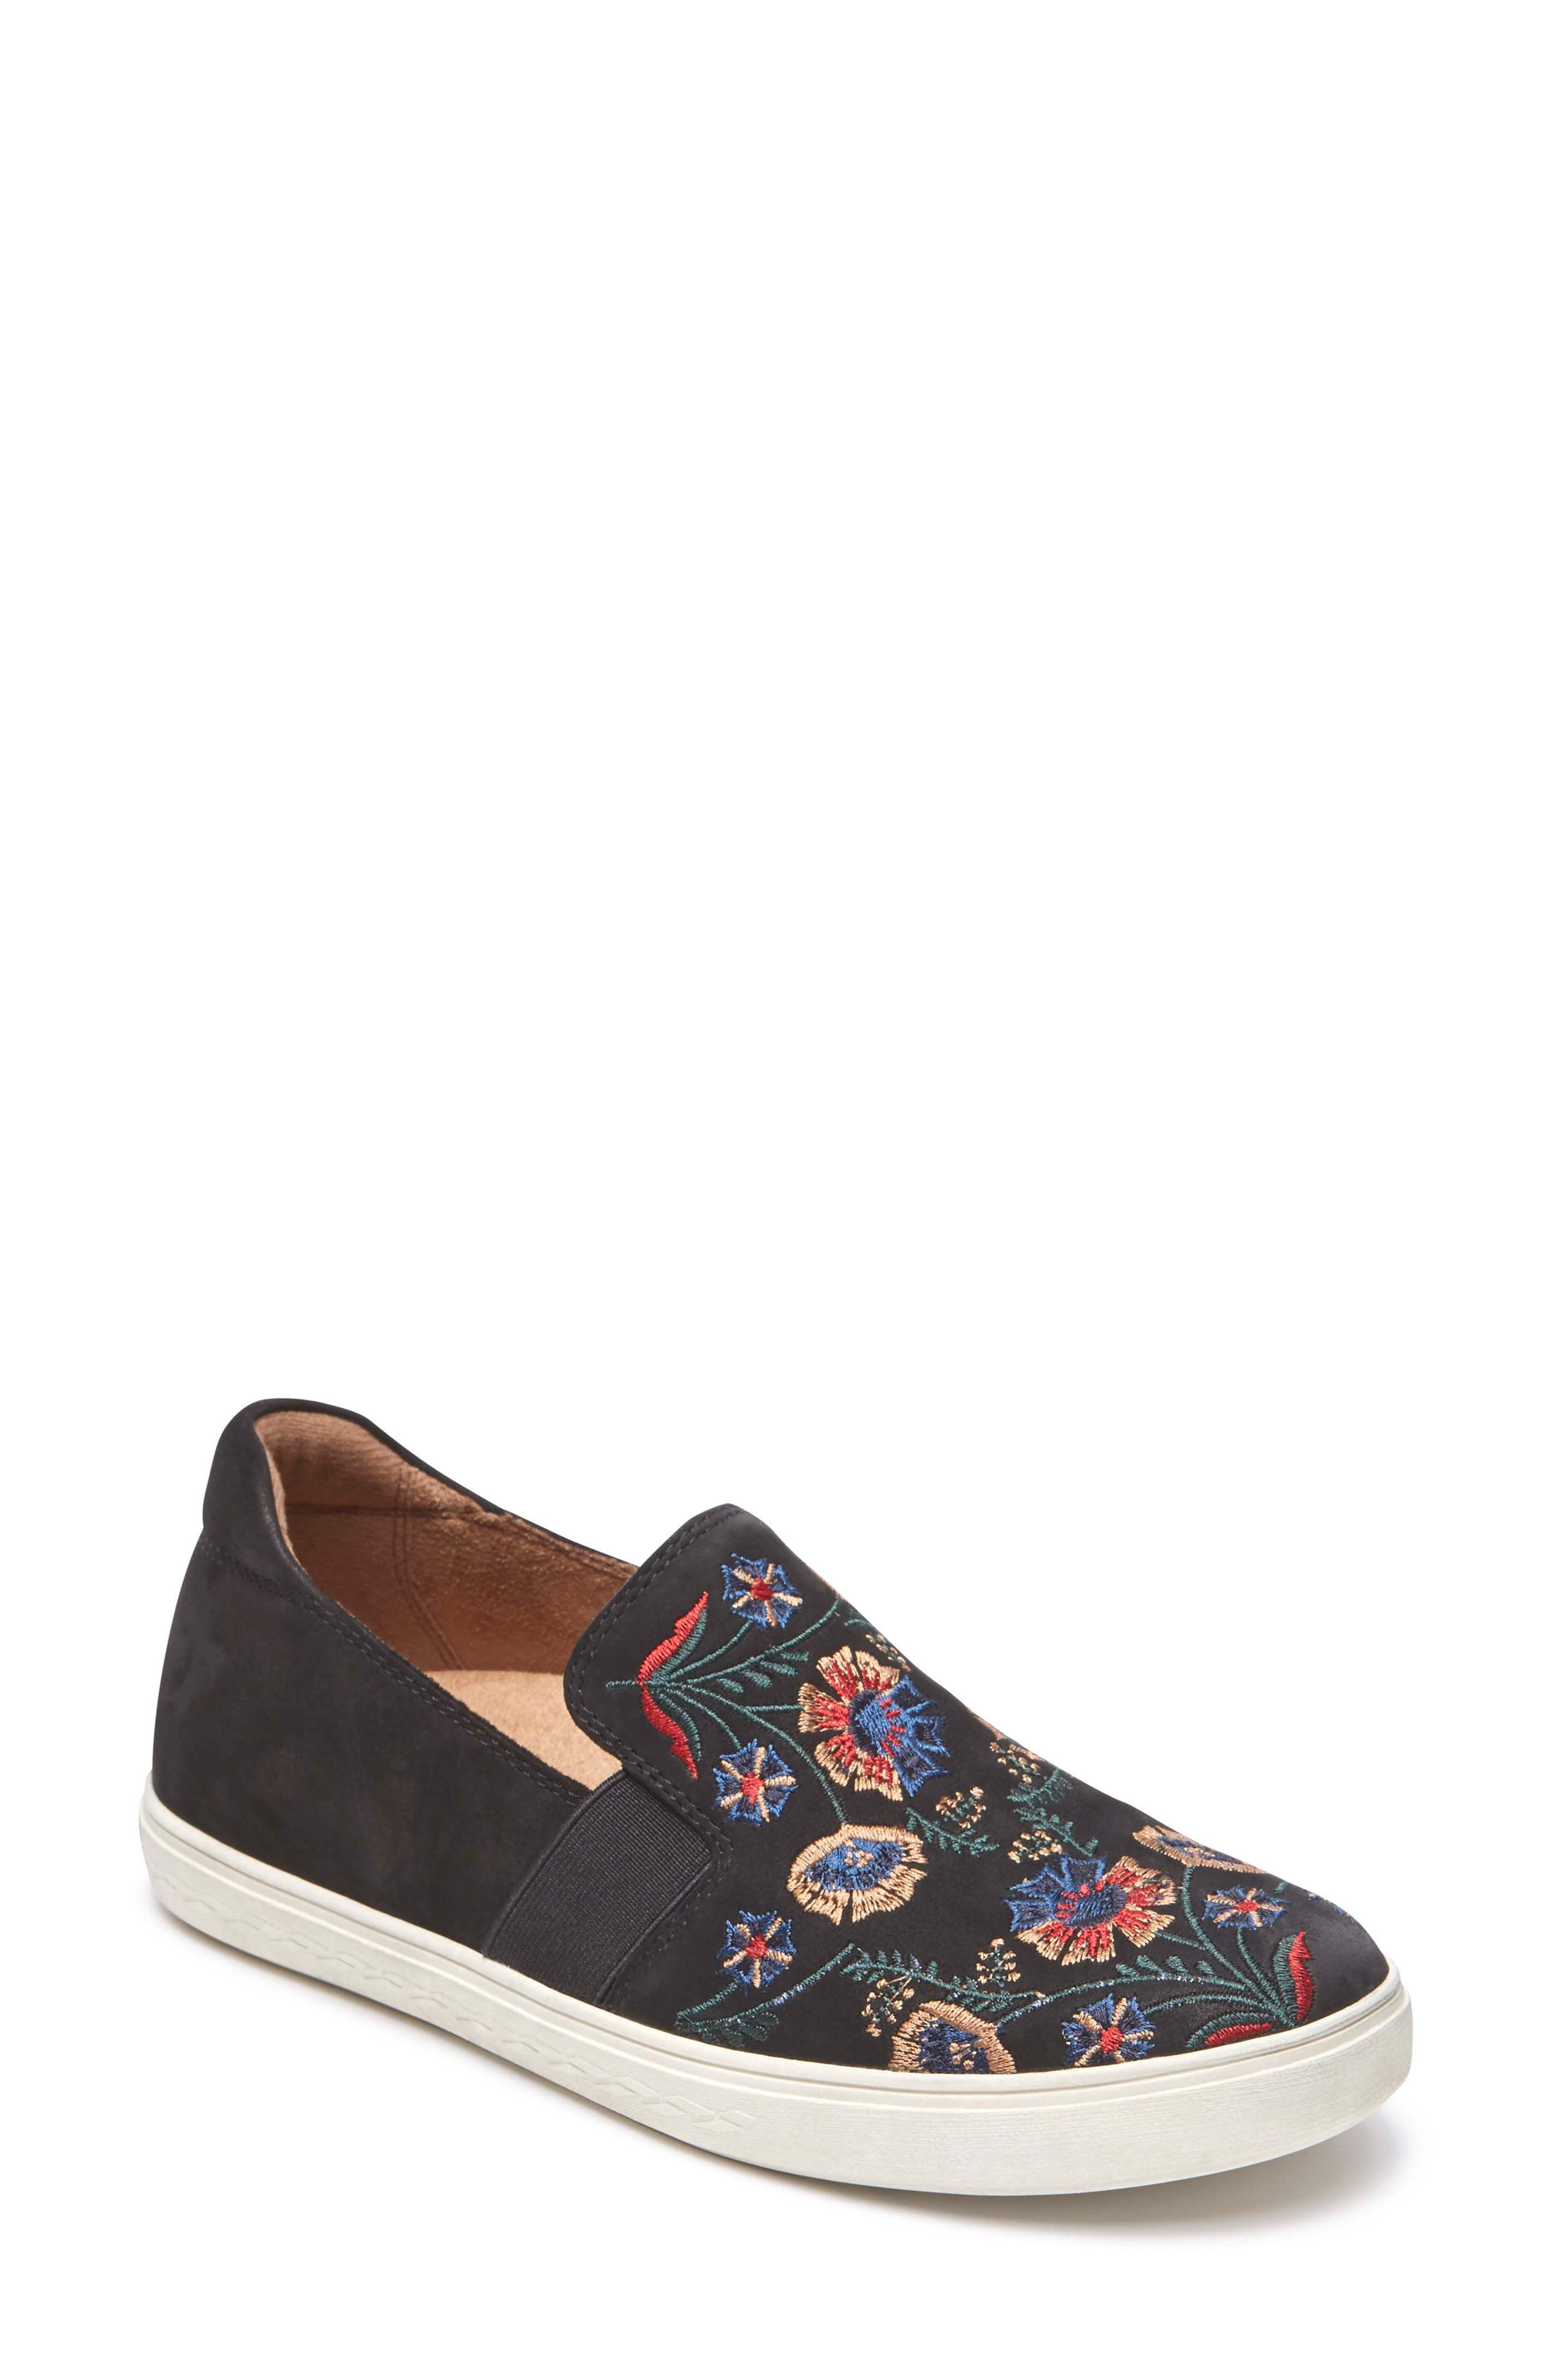 Cobb Hill Flower Embroidered Slip-On Sneaker,                             Main thumbnail 1, color,                             BLACK NUBUCK